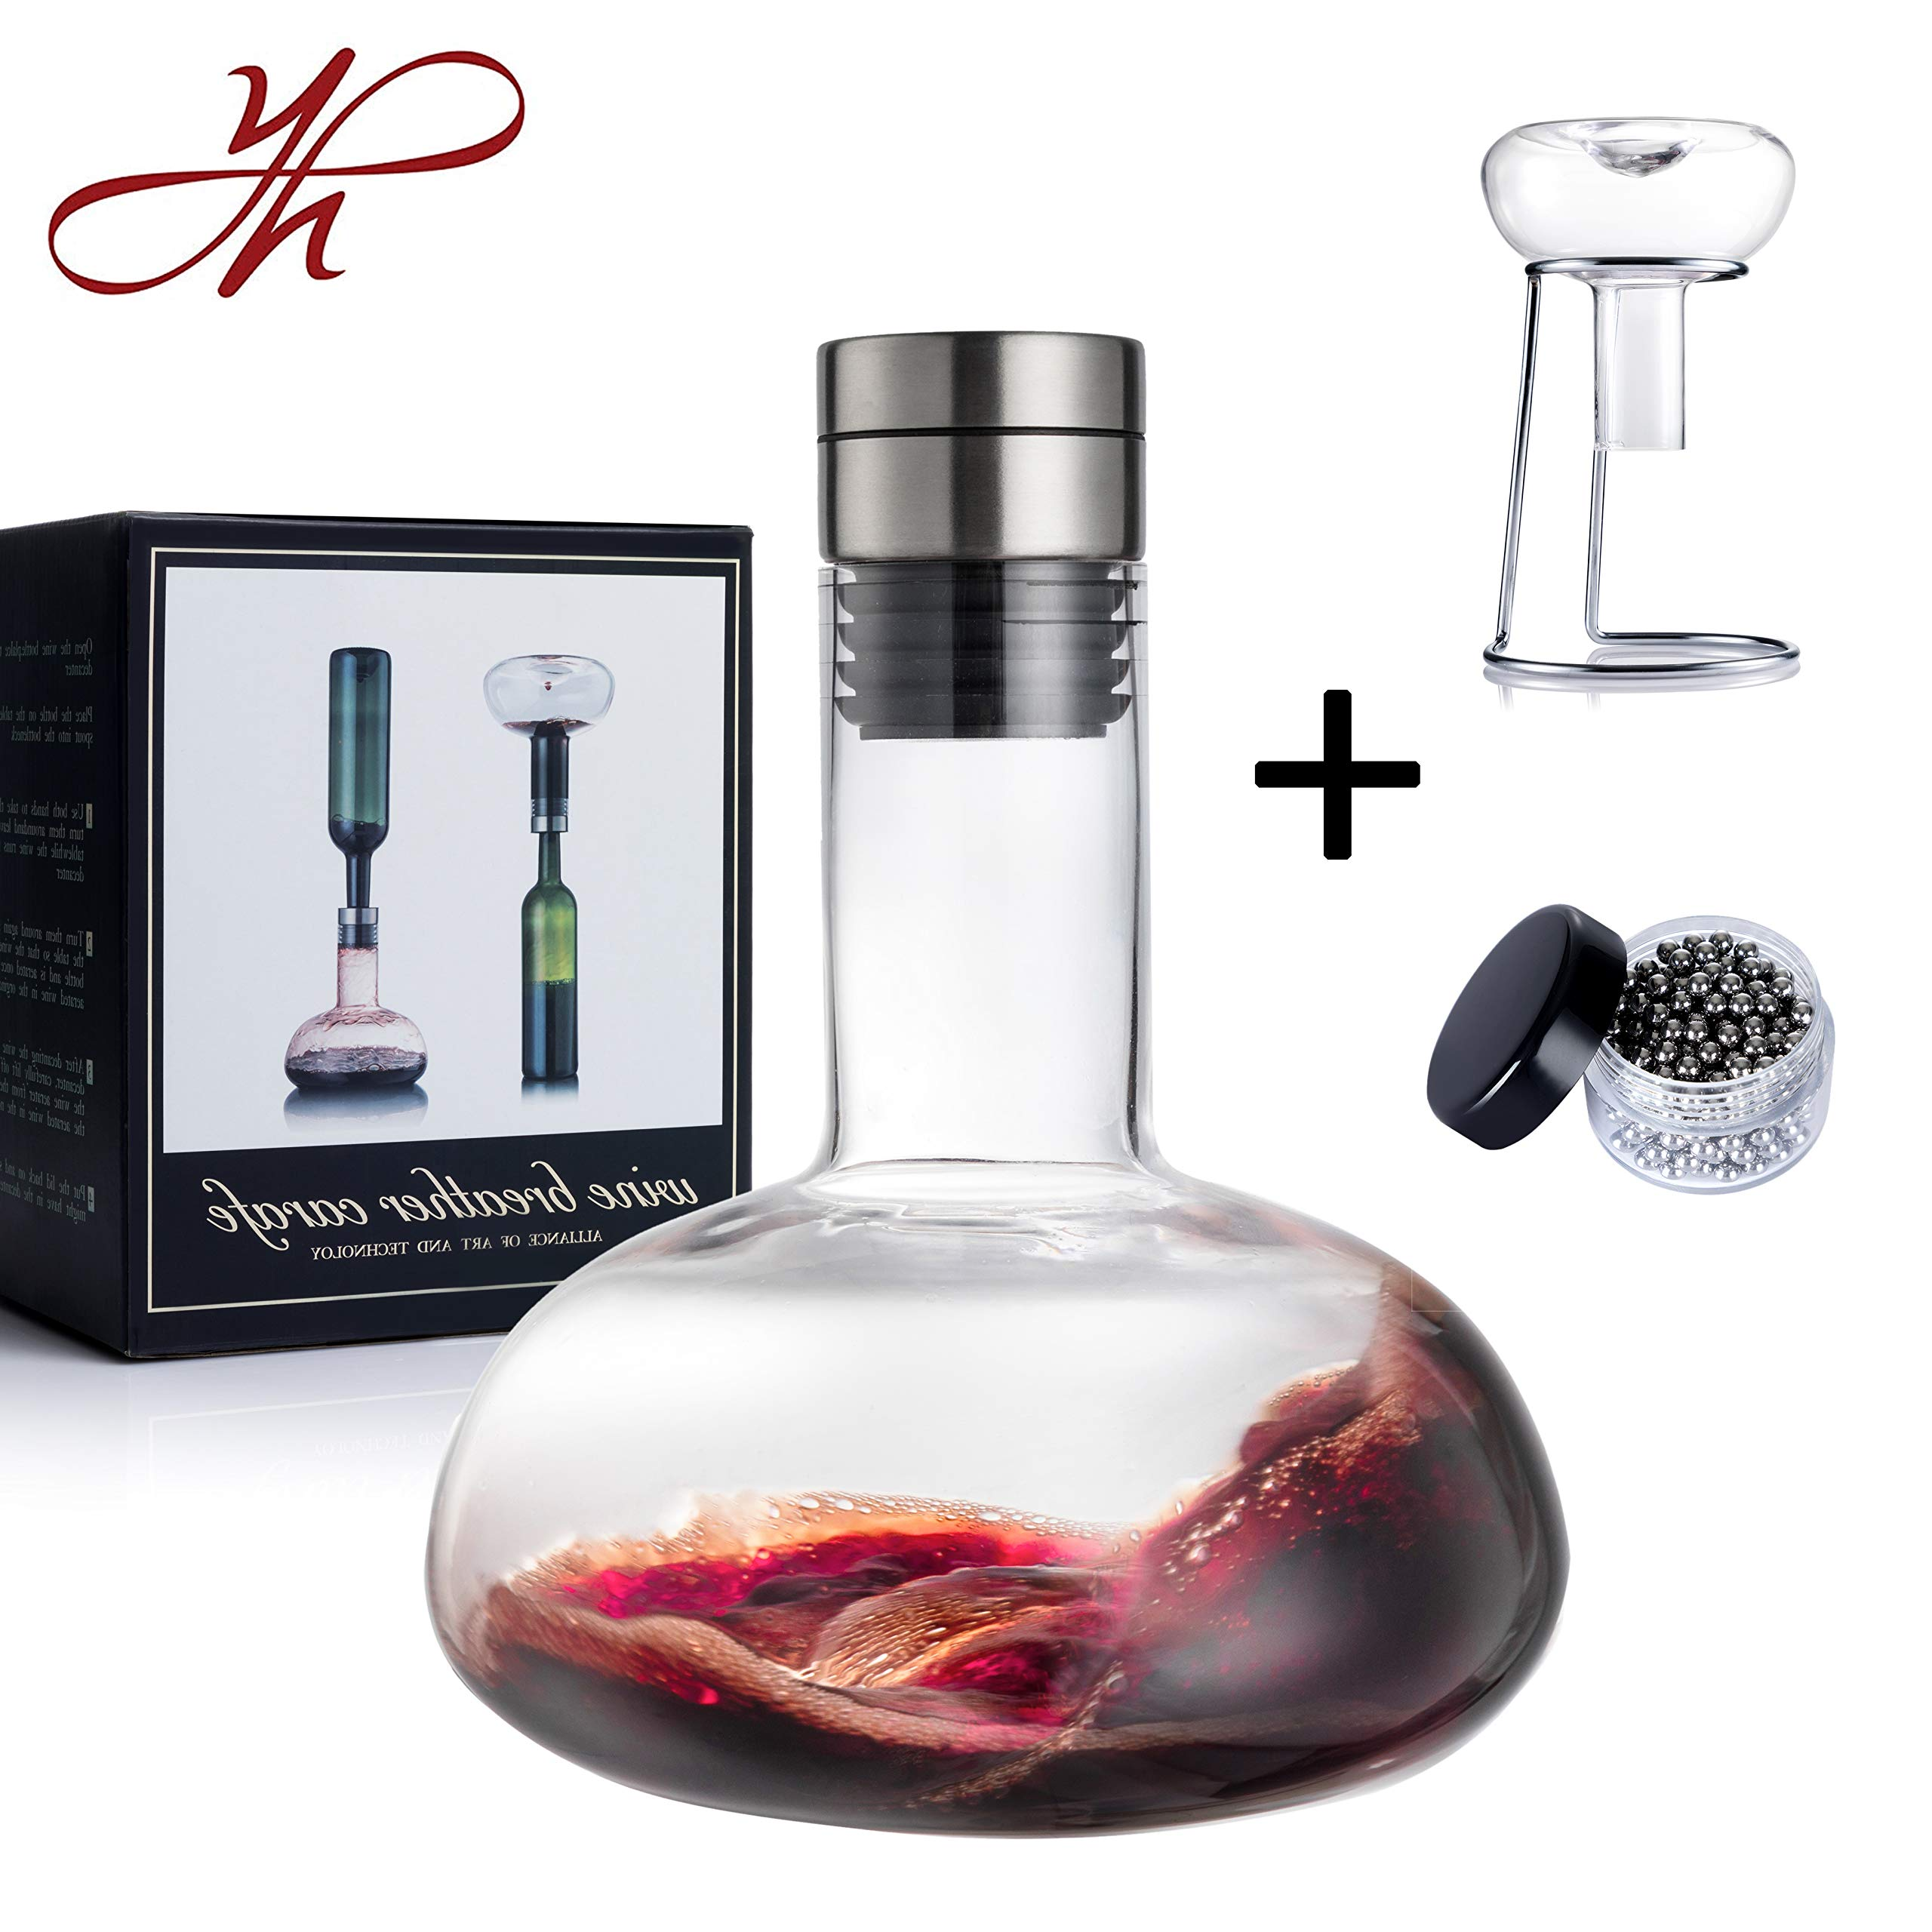 YouYah Wine Decanter Set,Wine Breather Carafe with Drying Stand,Steel Cleaning Beads and Aerator Lid,Crystal Glass,Wine Aerator,Wine Accessories,Wine Gift (New Packing)